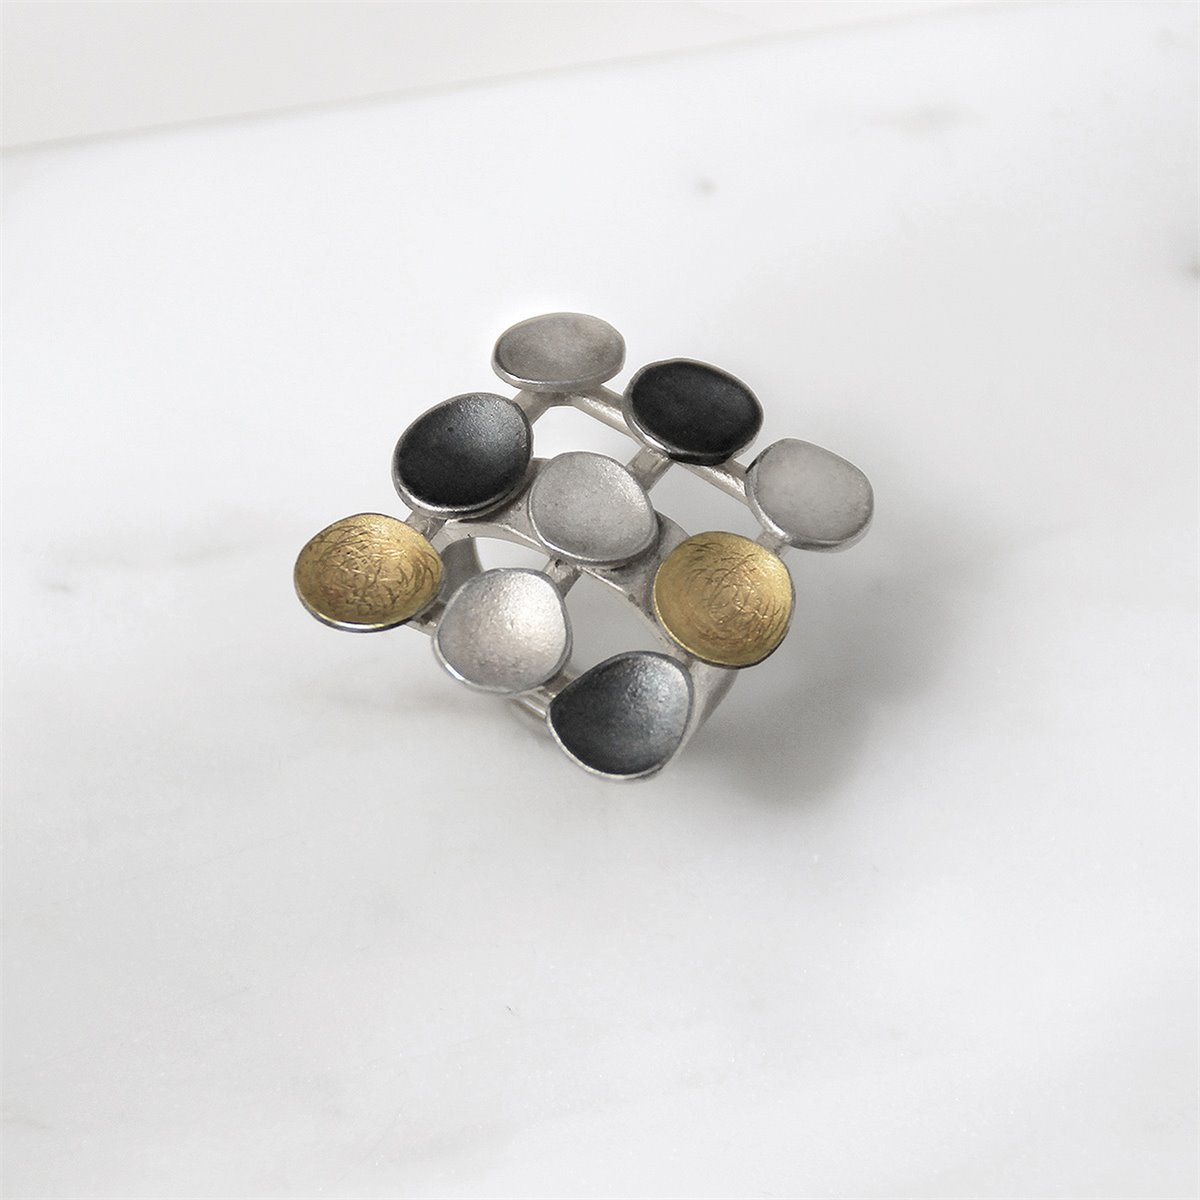 SILVER & GOLD RING. R1516